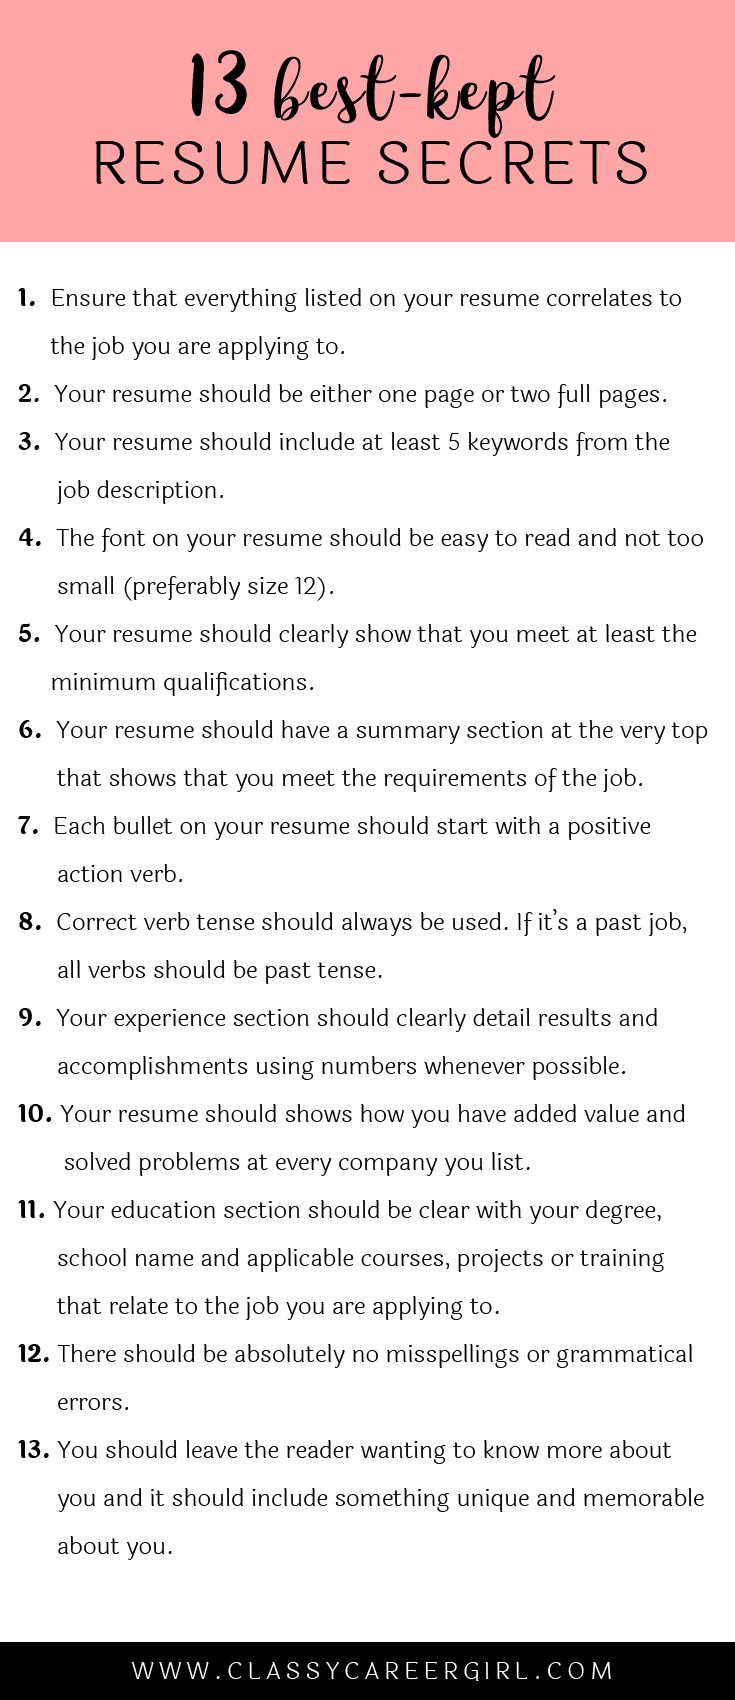 Opposenewapstandardsus  Outstanding  Ideas About Resume On Pinterest  Cv Format Resume  With Remarkable Some Hiring Managers Will Toss Your Resume Out If You Dont Know These  With Breathtaking How To Email Cover Letter And Resume Also Social Worker Resume Objective In Addition Cashier Resume Example And Resume Titles Examples As Well As Resume For Retail Jobs Additionally Need A Resume From Pinterestcom With Opposenewapstandardsus  Remarkable  Ideas About Resume On Pinterest  Cv Format Resume  With Breathtaking Some Hiring Managers Will Toss Your Resume Out If You Dont Know These  And Outstanding How To Email Cover Letter And Resume Also Social Worker Resume Objective In Addition Cashier Resume Example From Pinterestcom